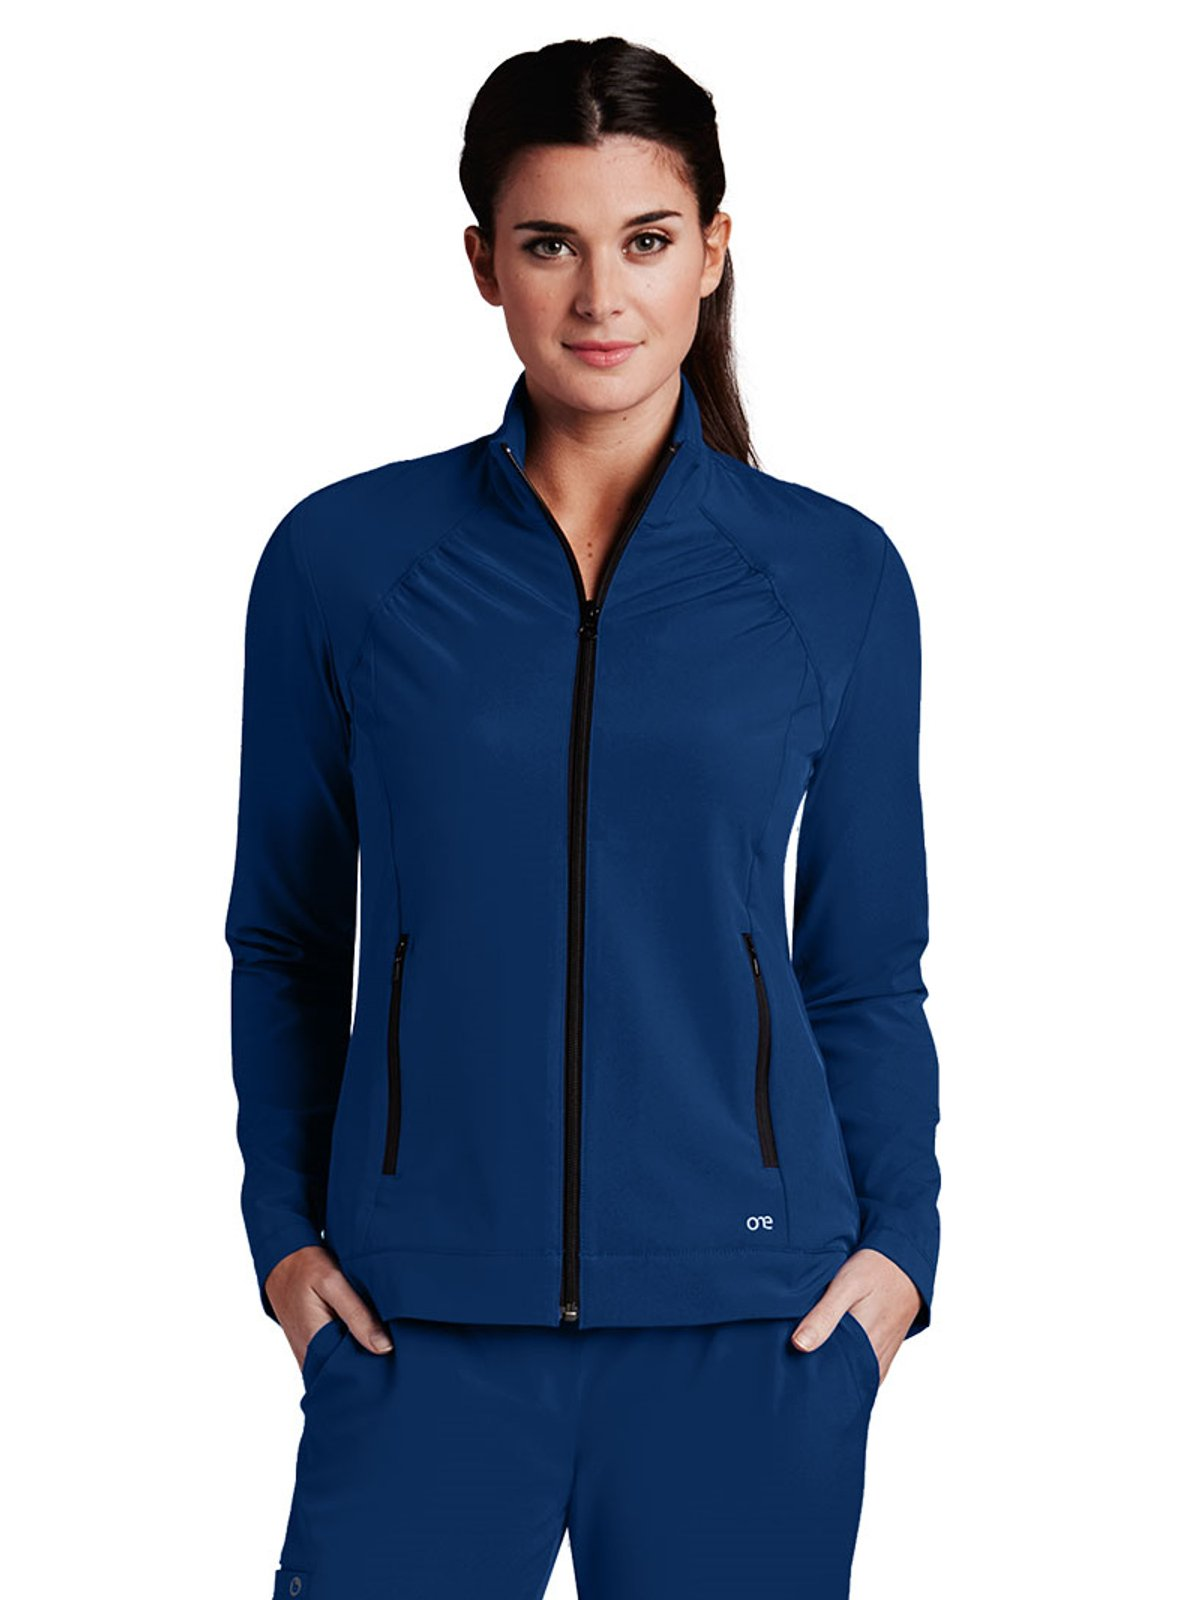 Barco One 5405 Zipper Front Jacket Indigo M